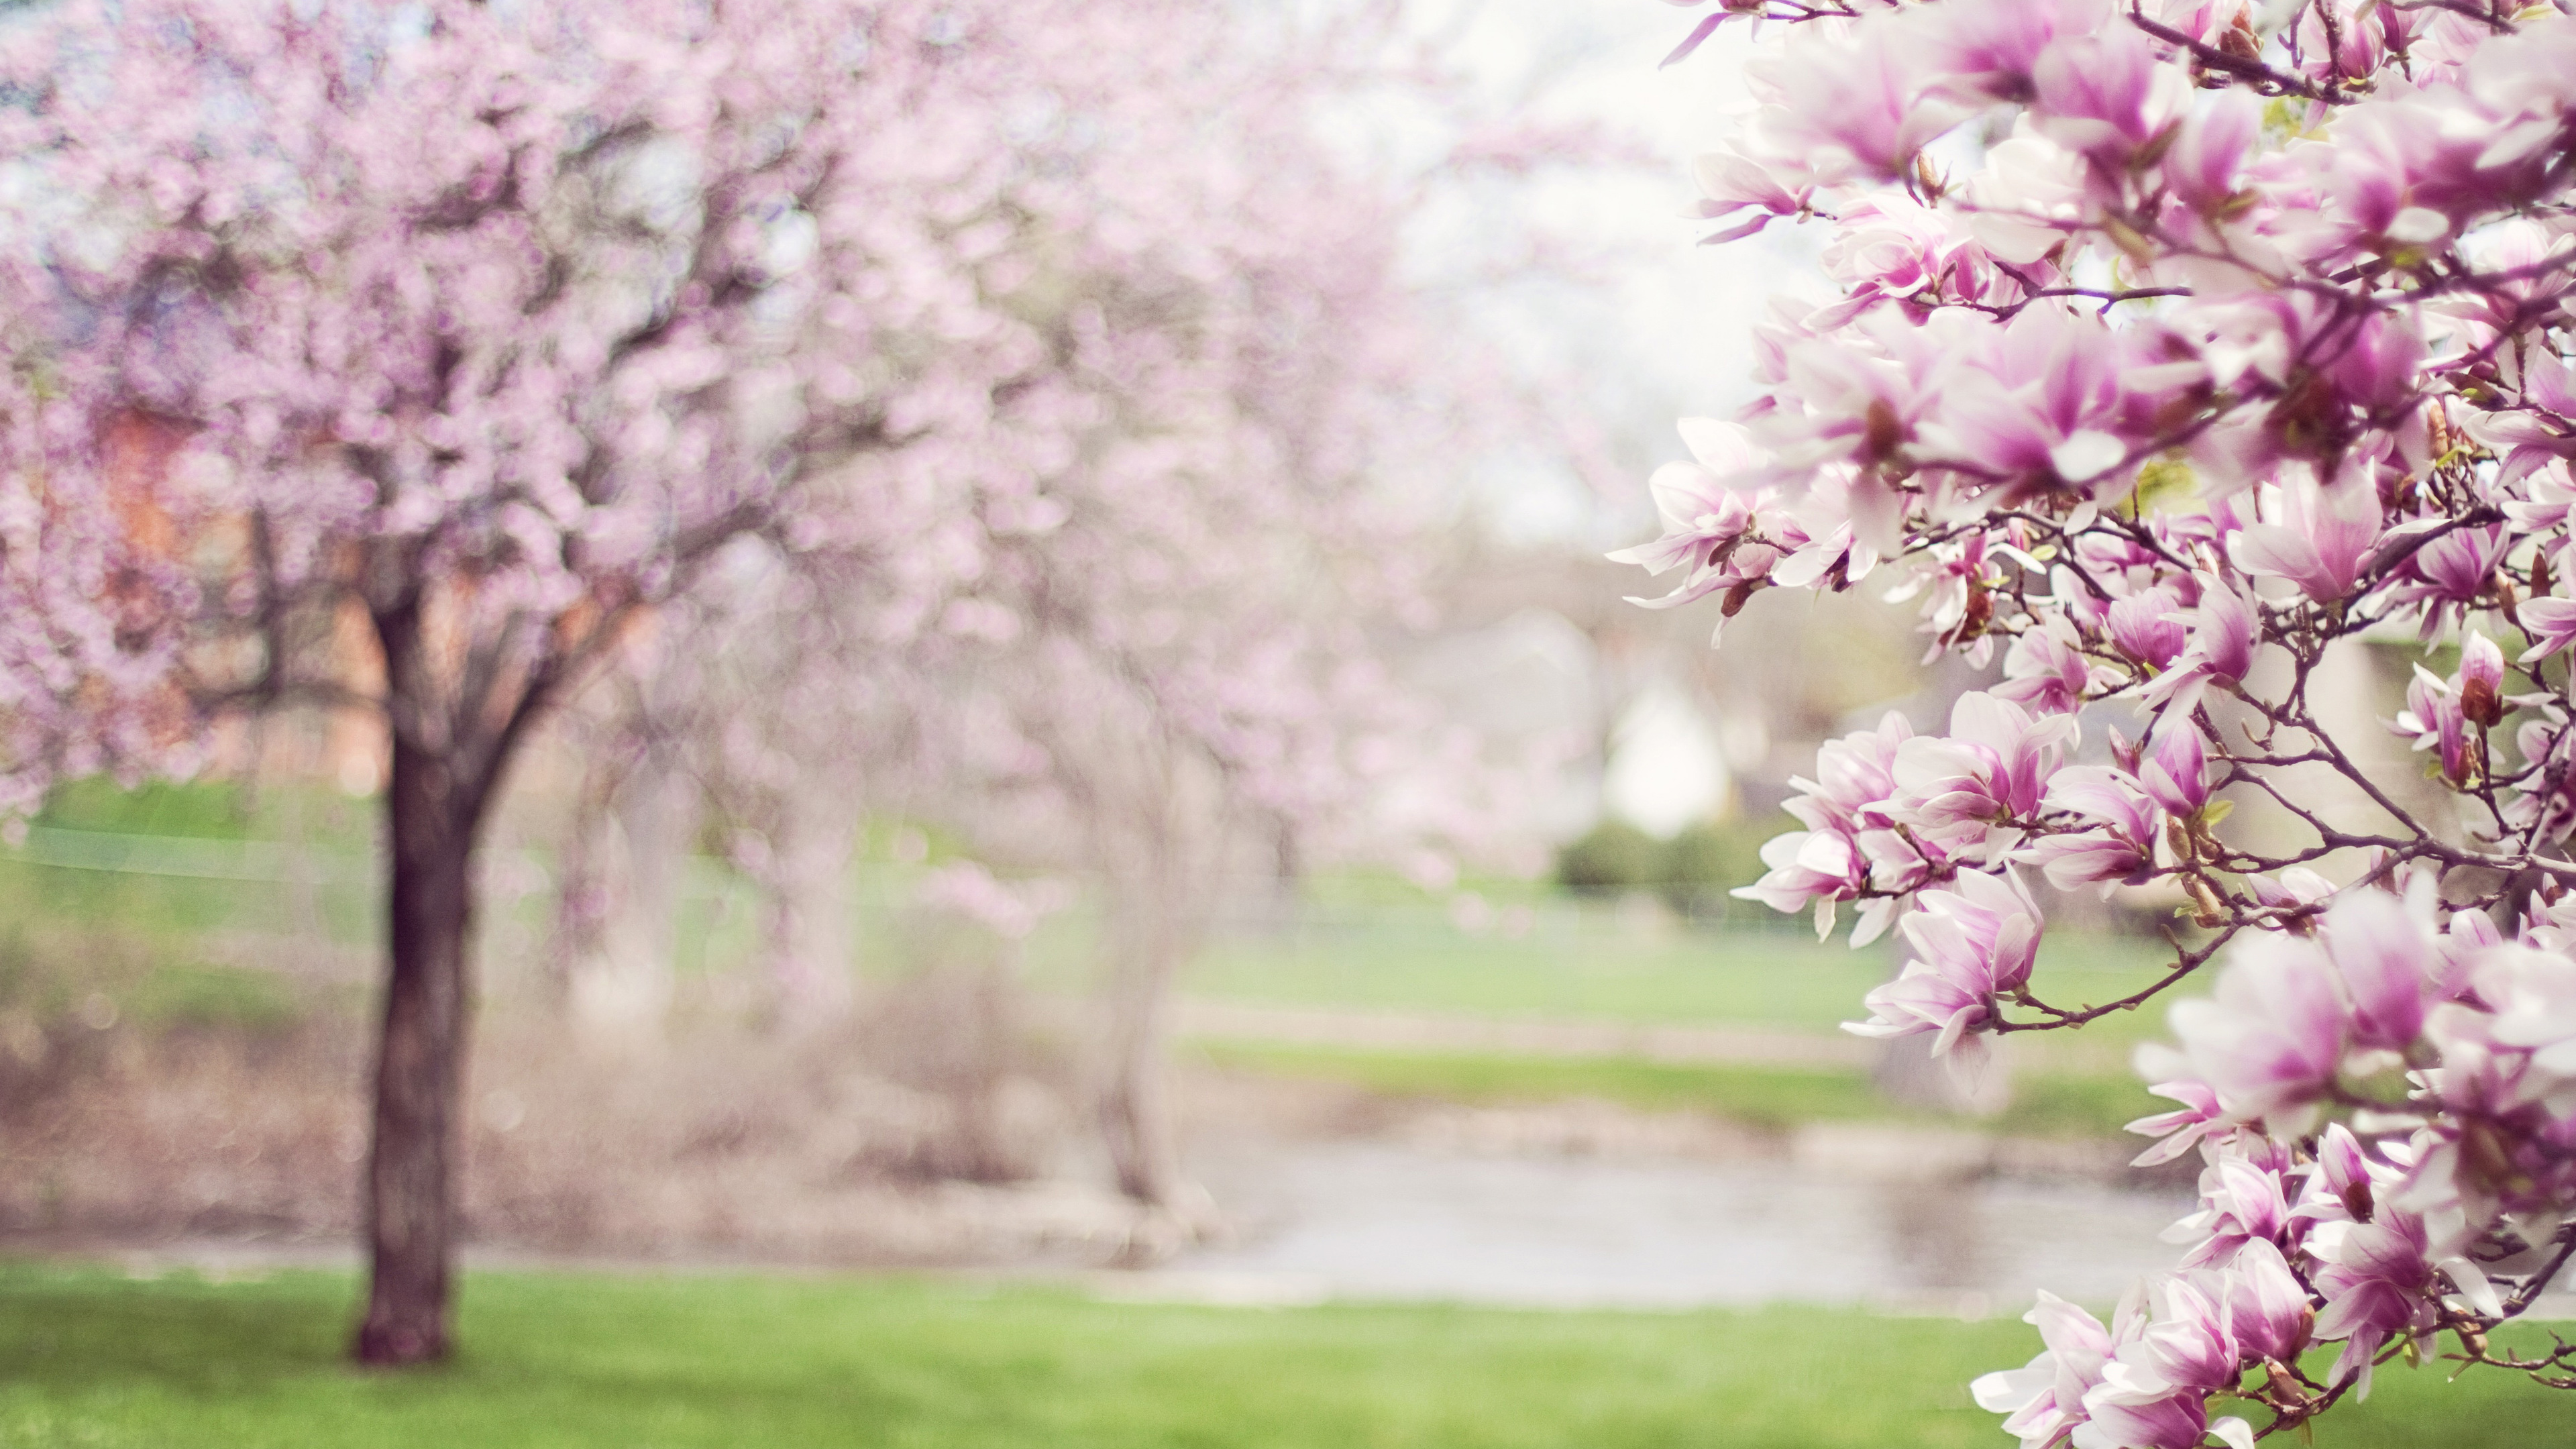 Cherry Blossom Tree 4k - Magical Cherry Blossom Tree , HD Wallpaper & Backgrounds